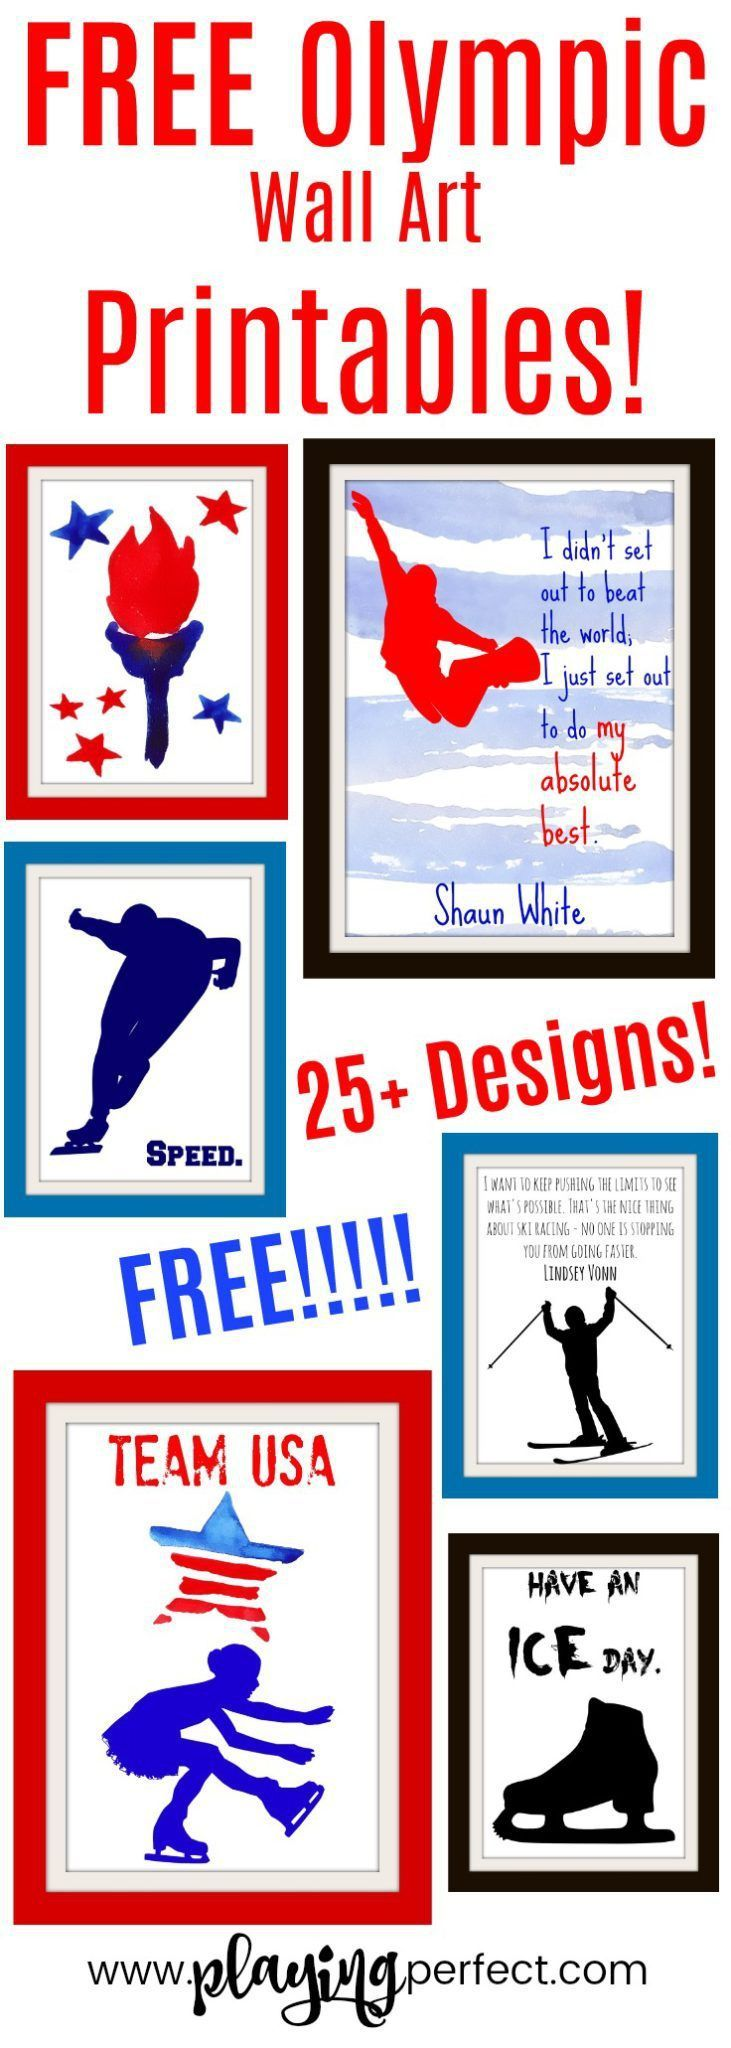 Free Olympic wall art printables for The Olympics! If you love The Olympic Games you'll love these free Olympic printables! Olympic prints for your Olympics party, for the Winter Olympics or the Summer Olympics! Olympian quotes by Simone Biles, Michael Phelps, Shaun White, and Lindsey Vonn! You'll love these Olympic decorations! FREE Olympic printable pack! | playingperfect.com |  #theolympics #olympic #playingperfect #winterolympics #teamusa #olympicgames #wallart #freeprintables #olympics